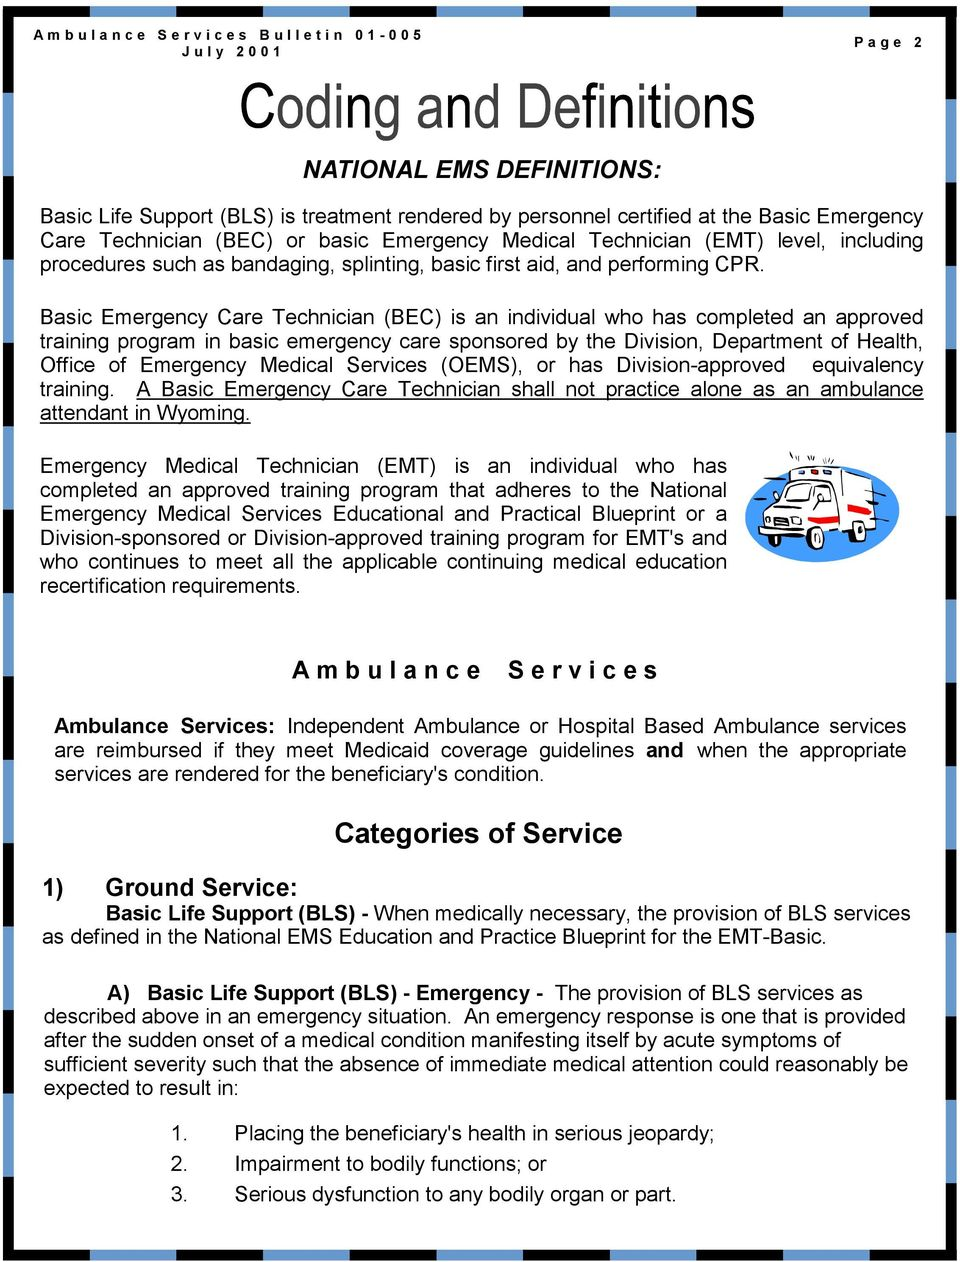 Basic Emergency Care Technician (BEC) is an individual who has completed an approved training program in basic emergency care sponsored by the Division, Department of Health, Office of Emergency